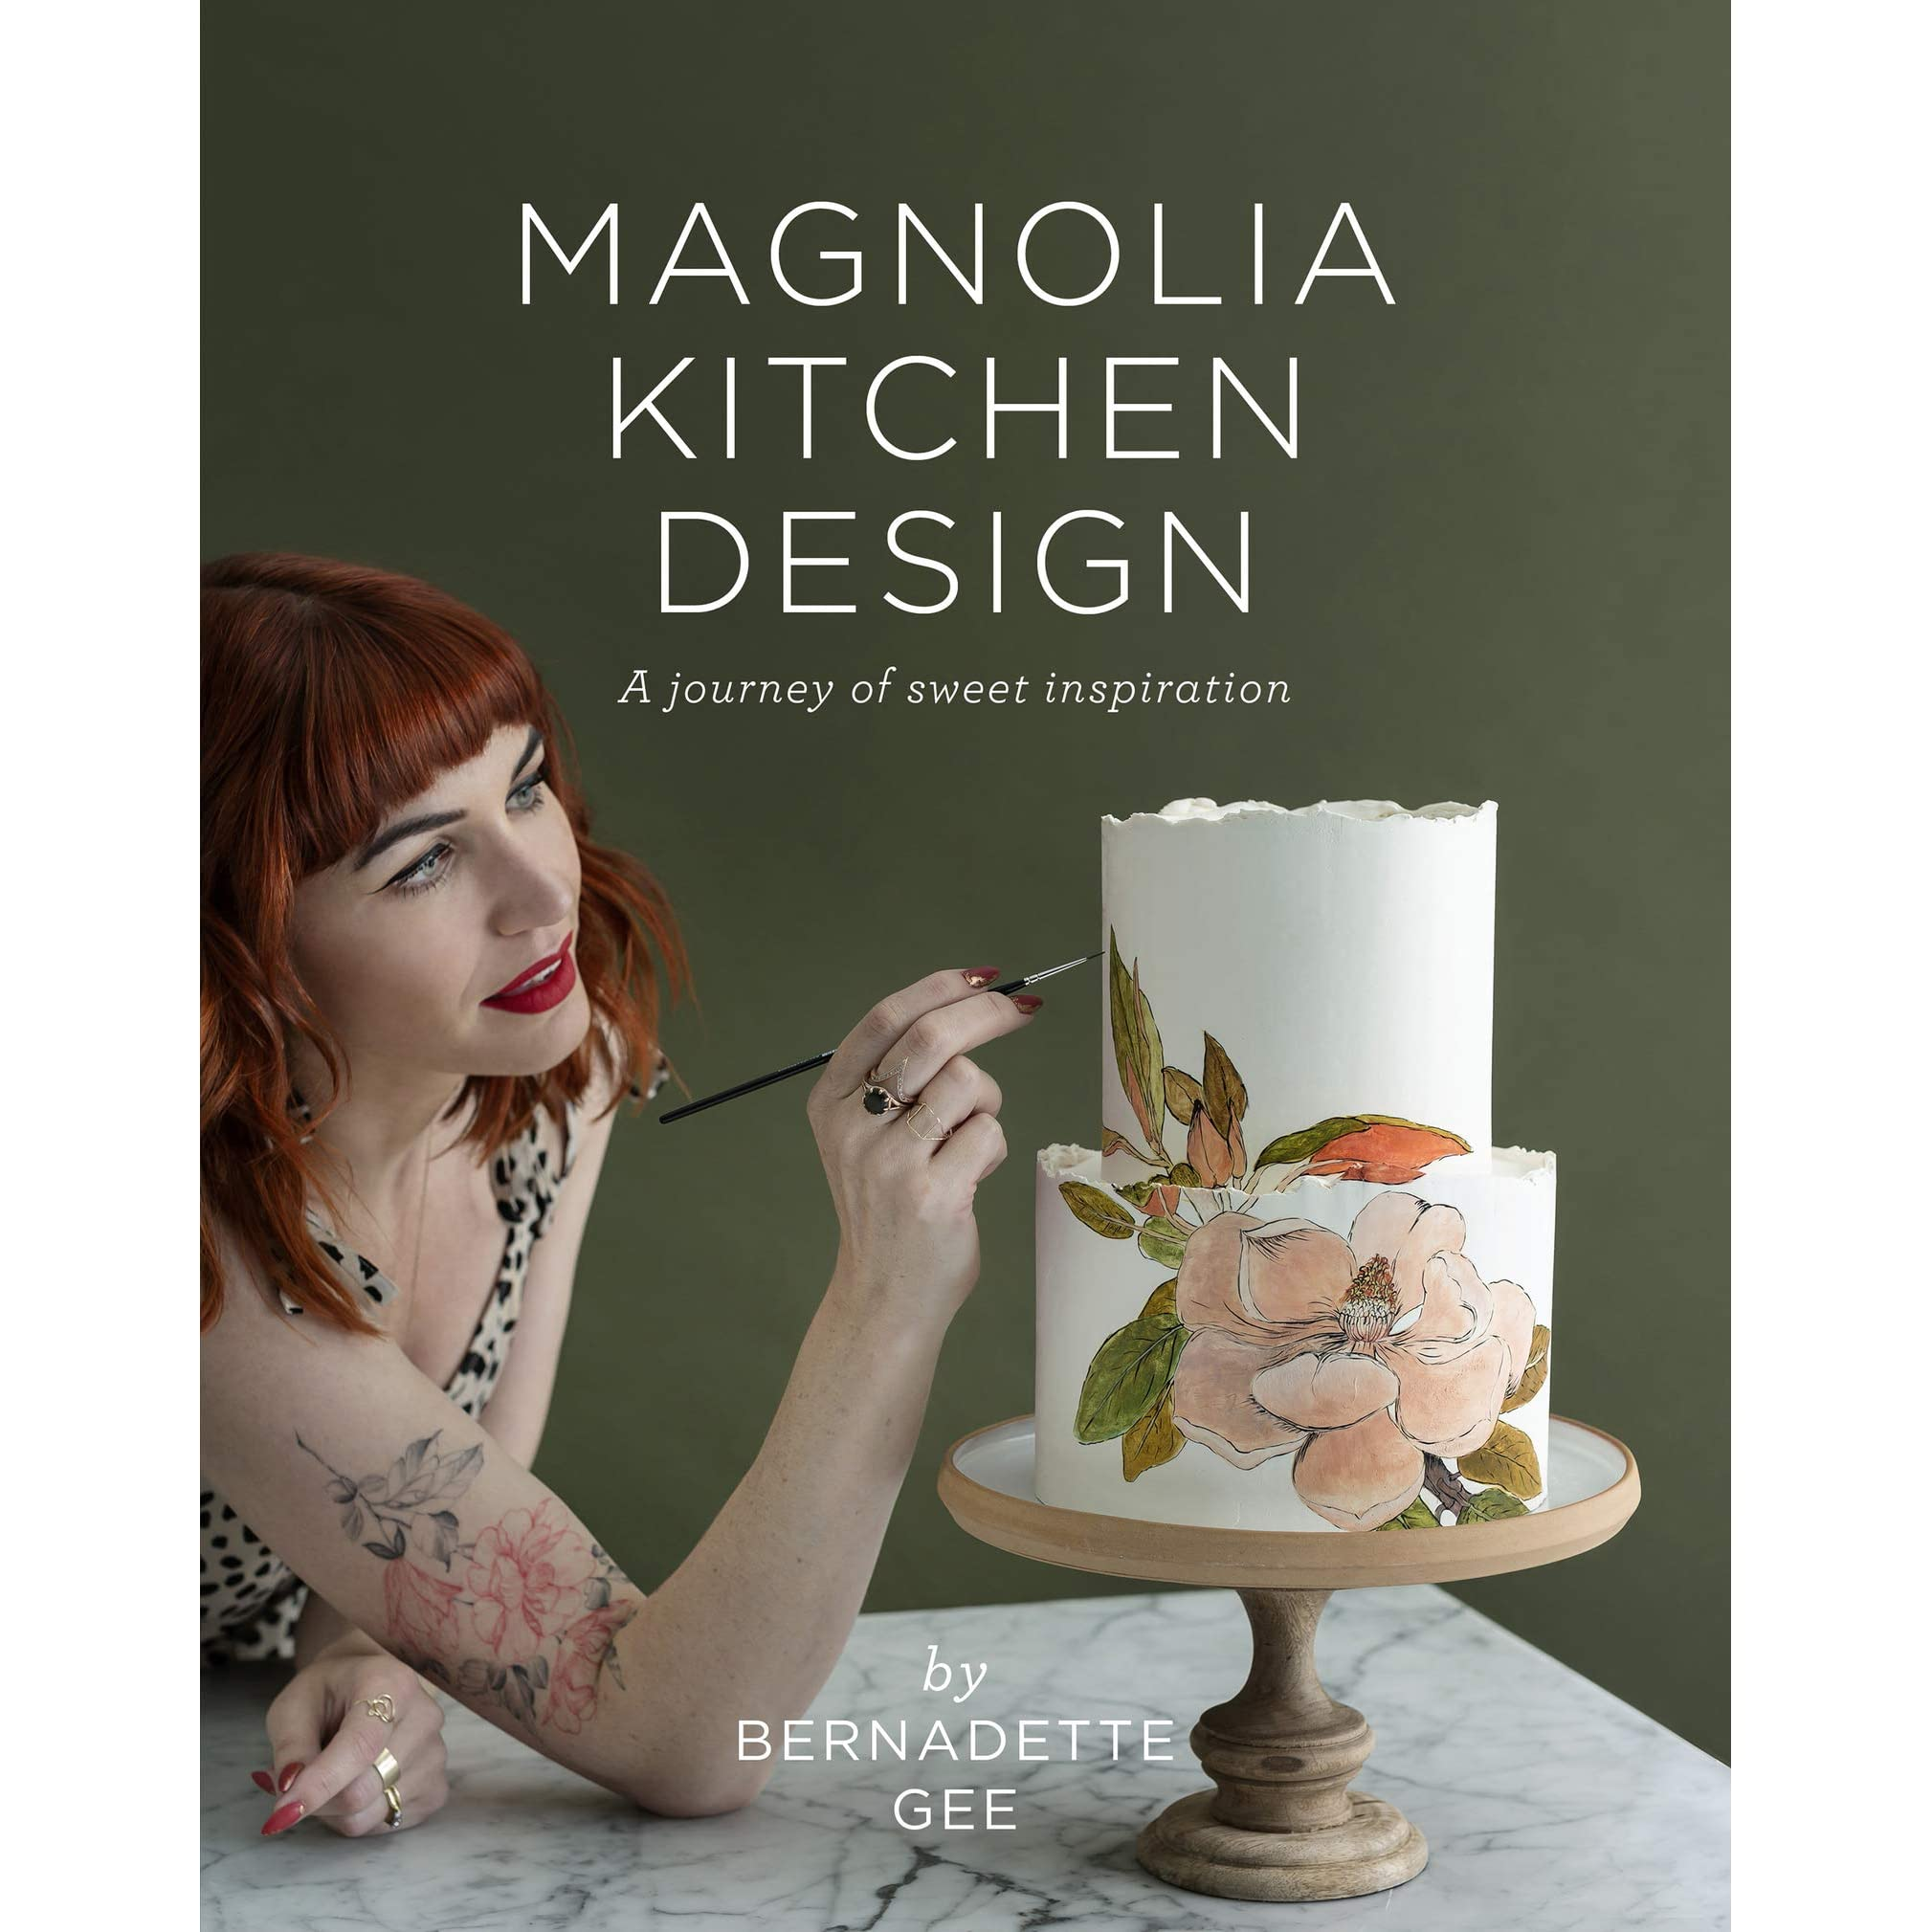 Magnolia Kitchen Design: A Journey of Sweet Inspiration by